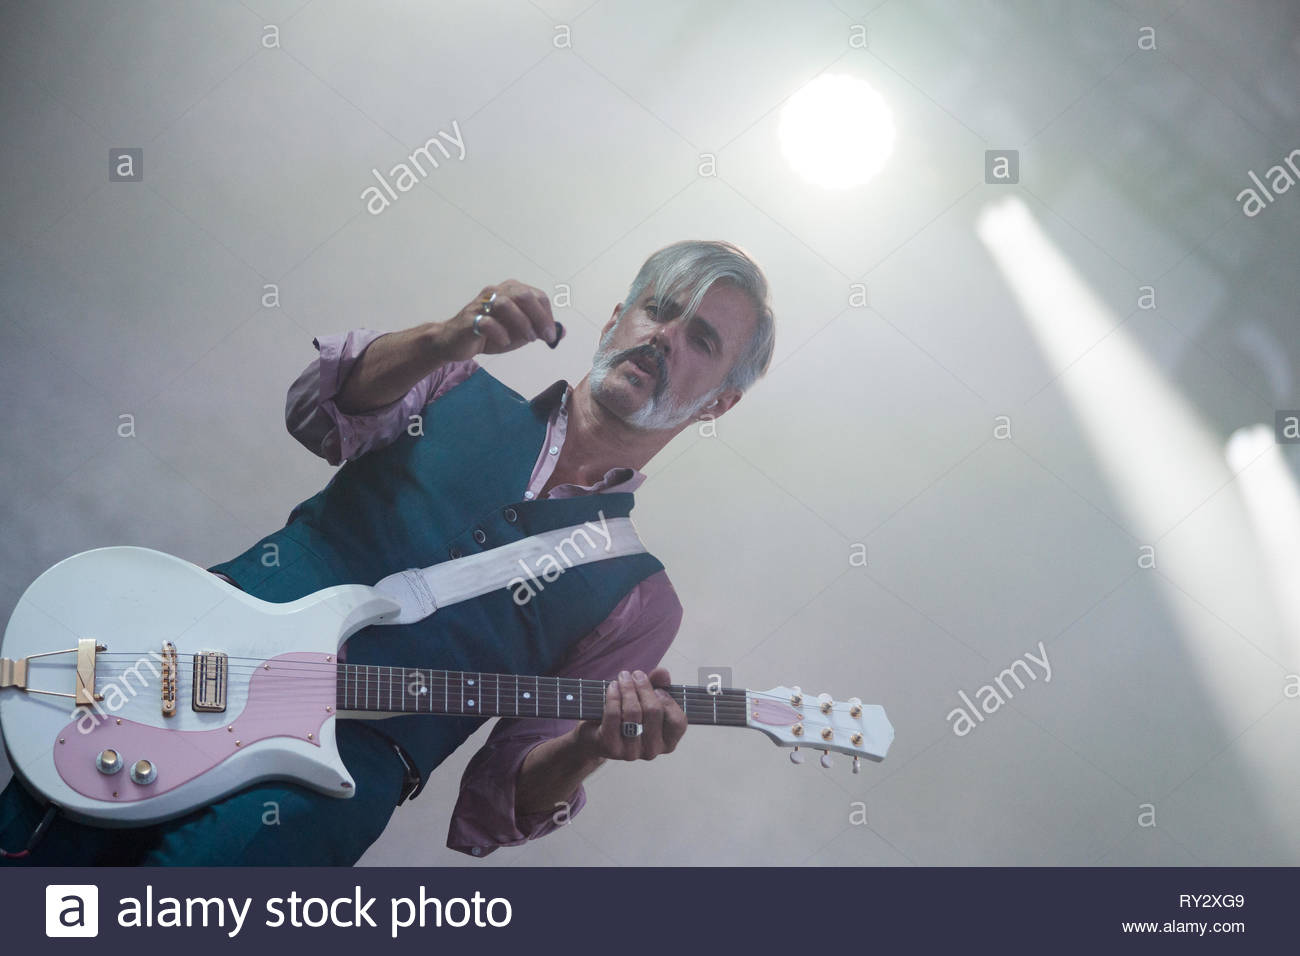 TRIGGERFINGER performing live, 13 july 2015 Stock Photo